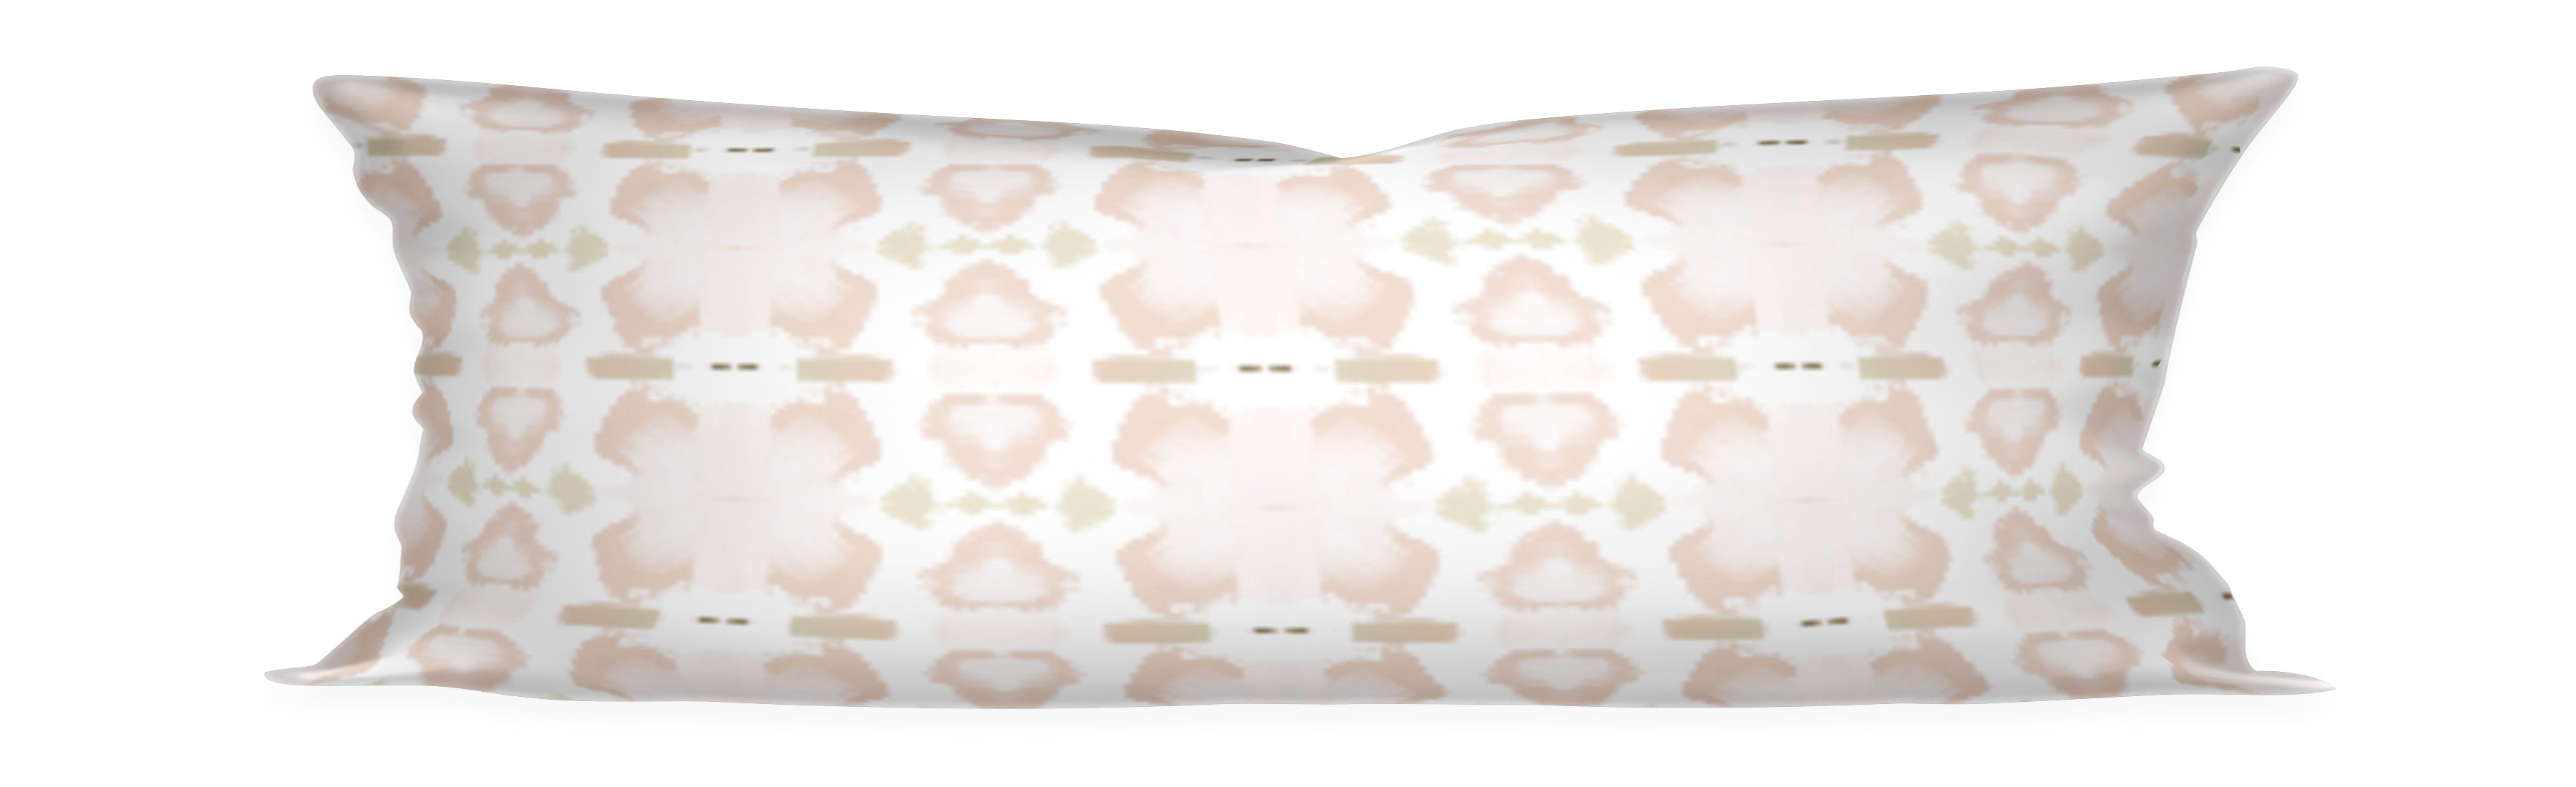 Sable Blush Pillow